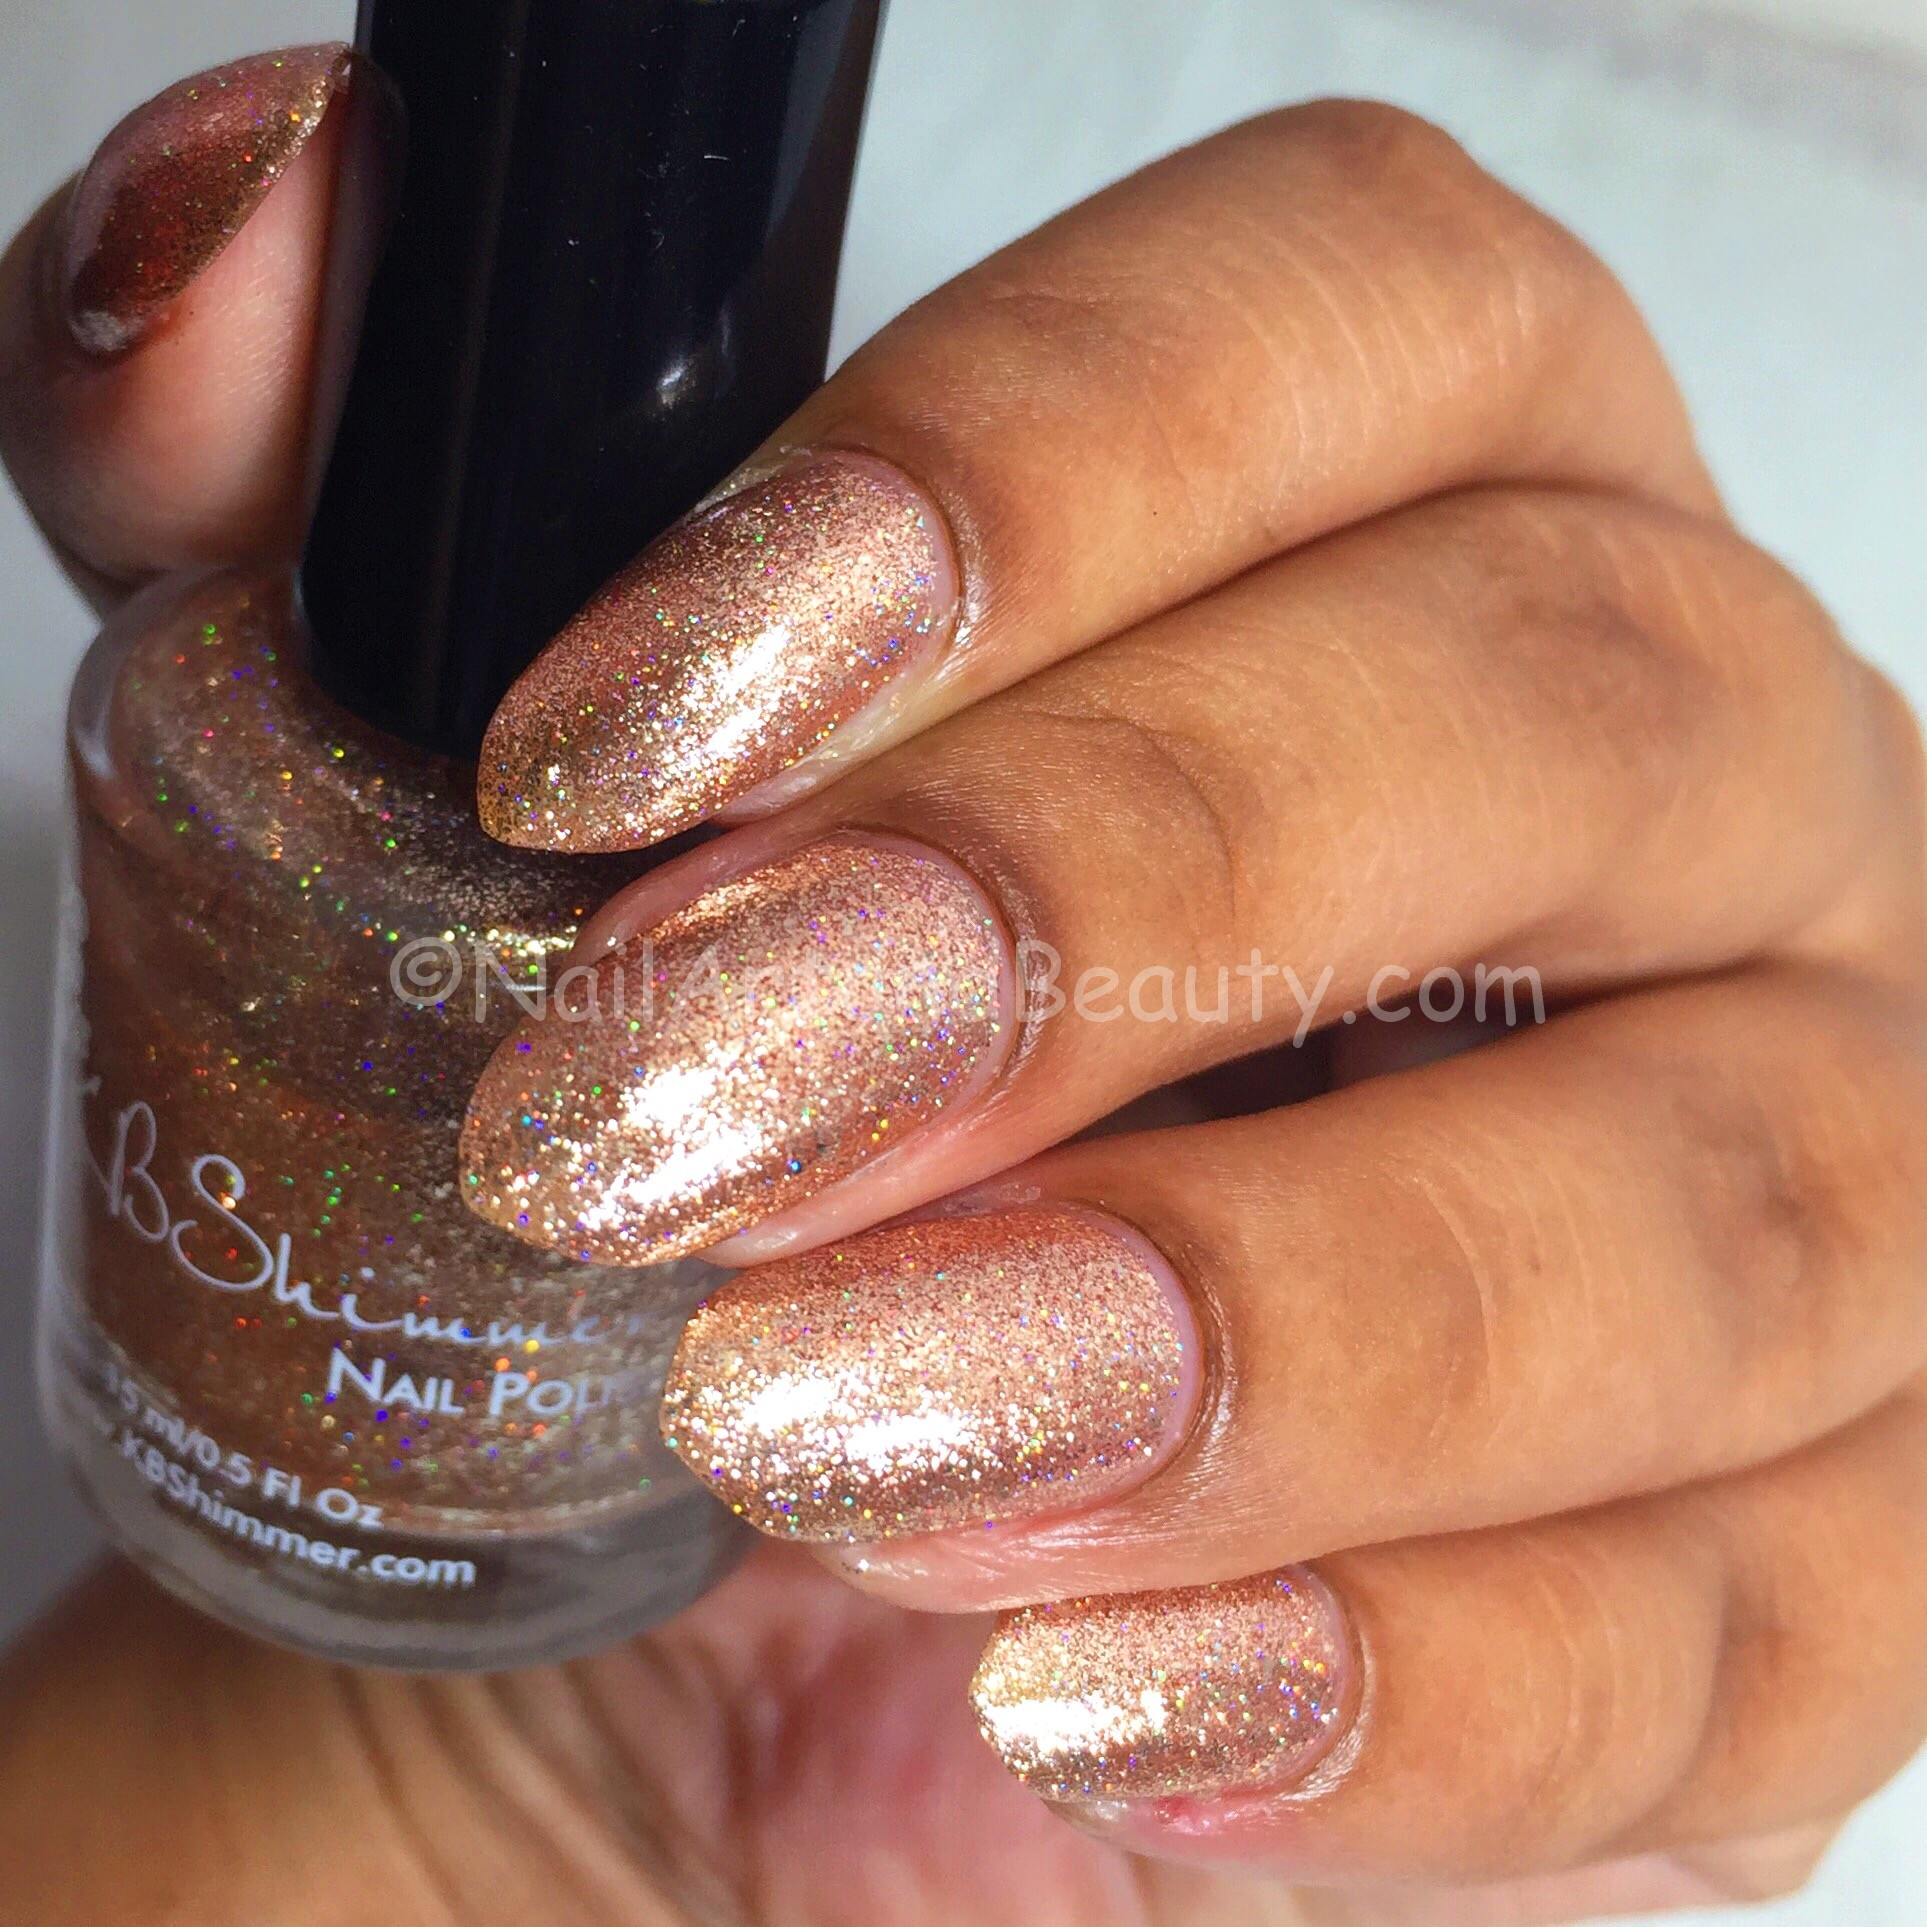 KB Shimmer One Night Stand Swatch